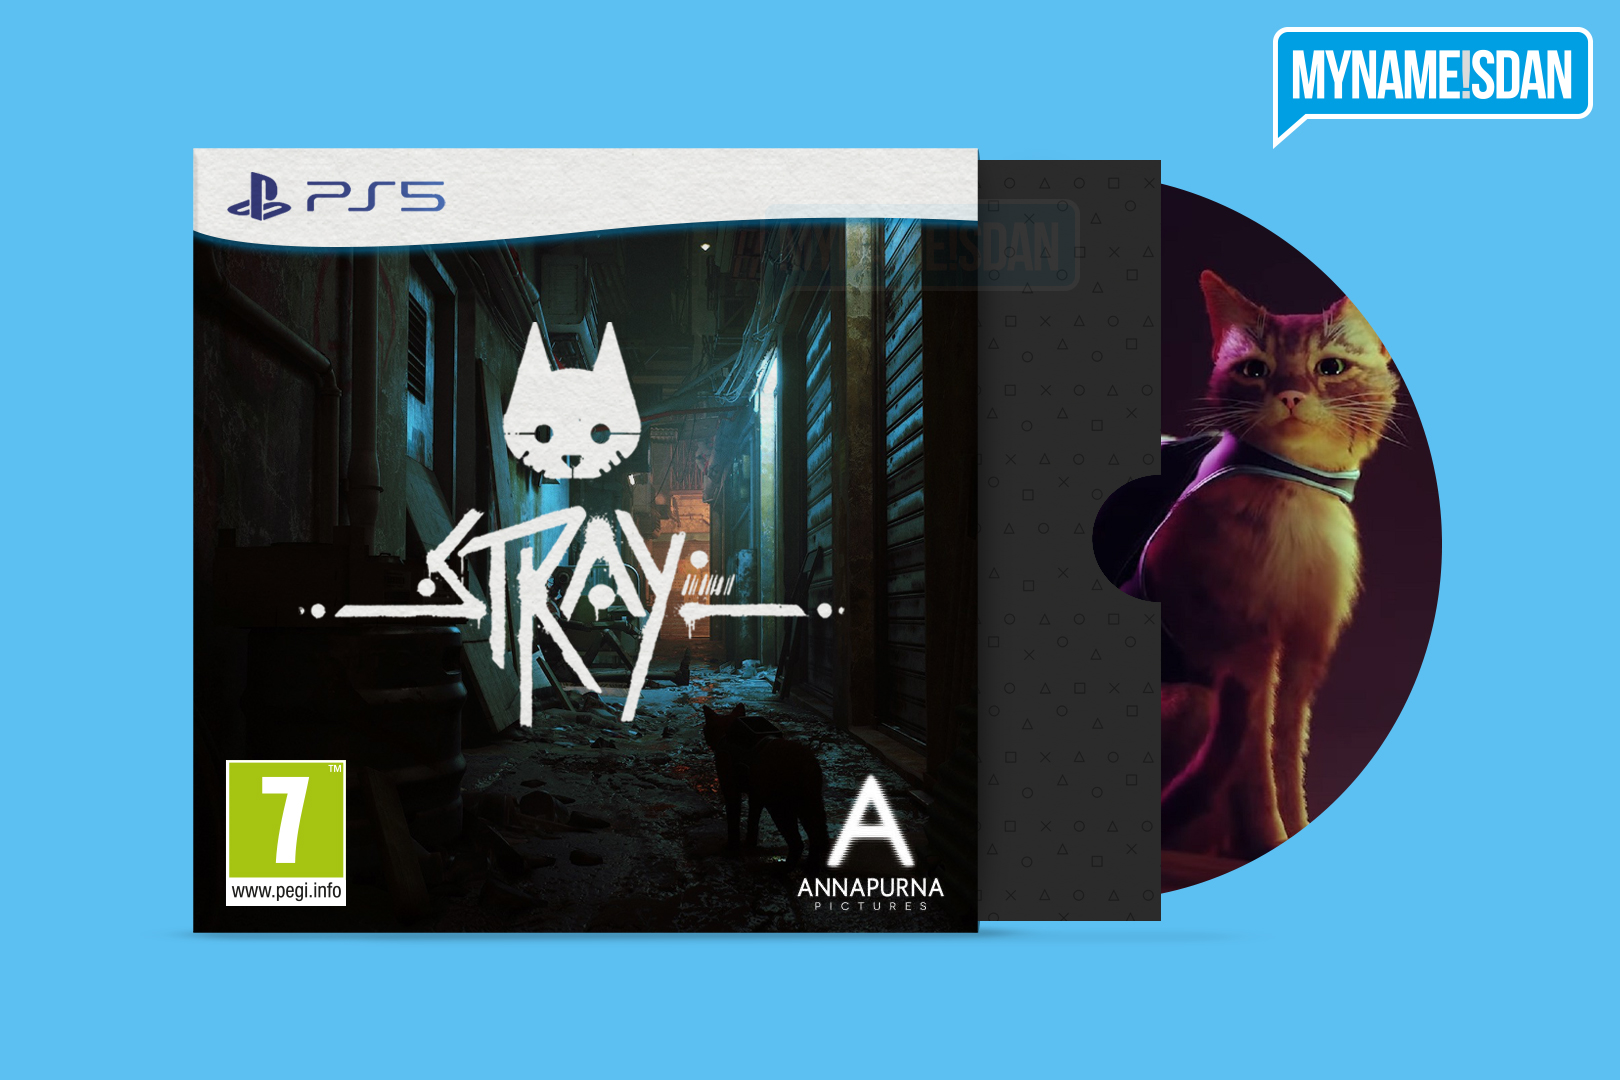 PS5 Cardboard Game Case Concept Design for Stray